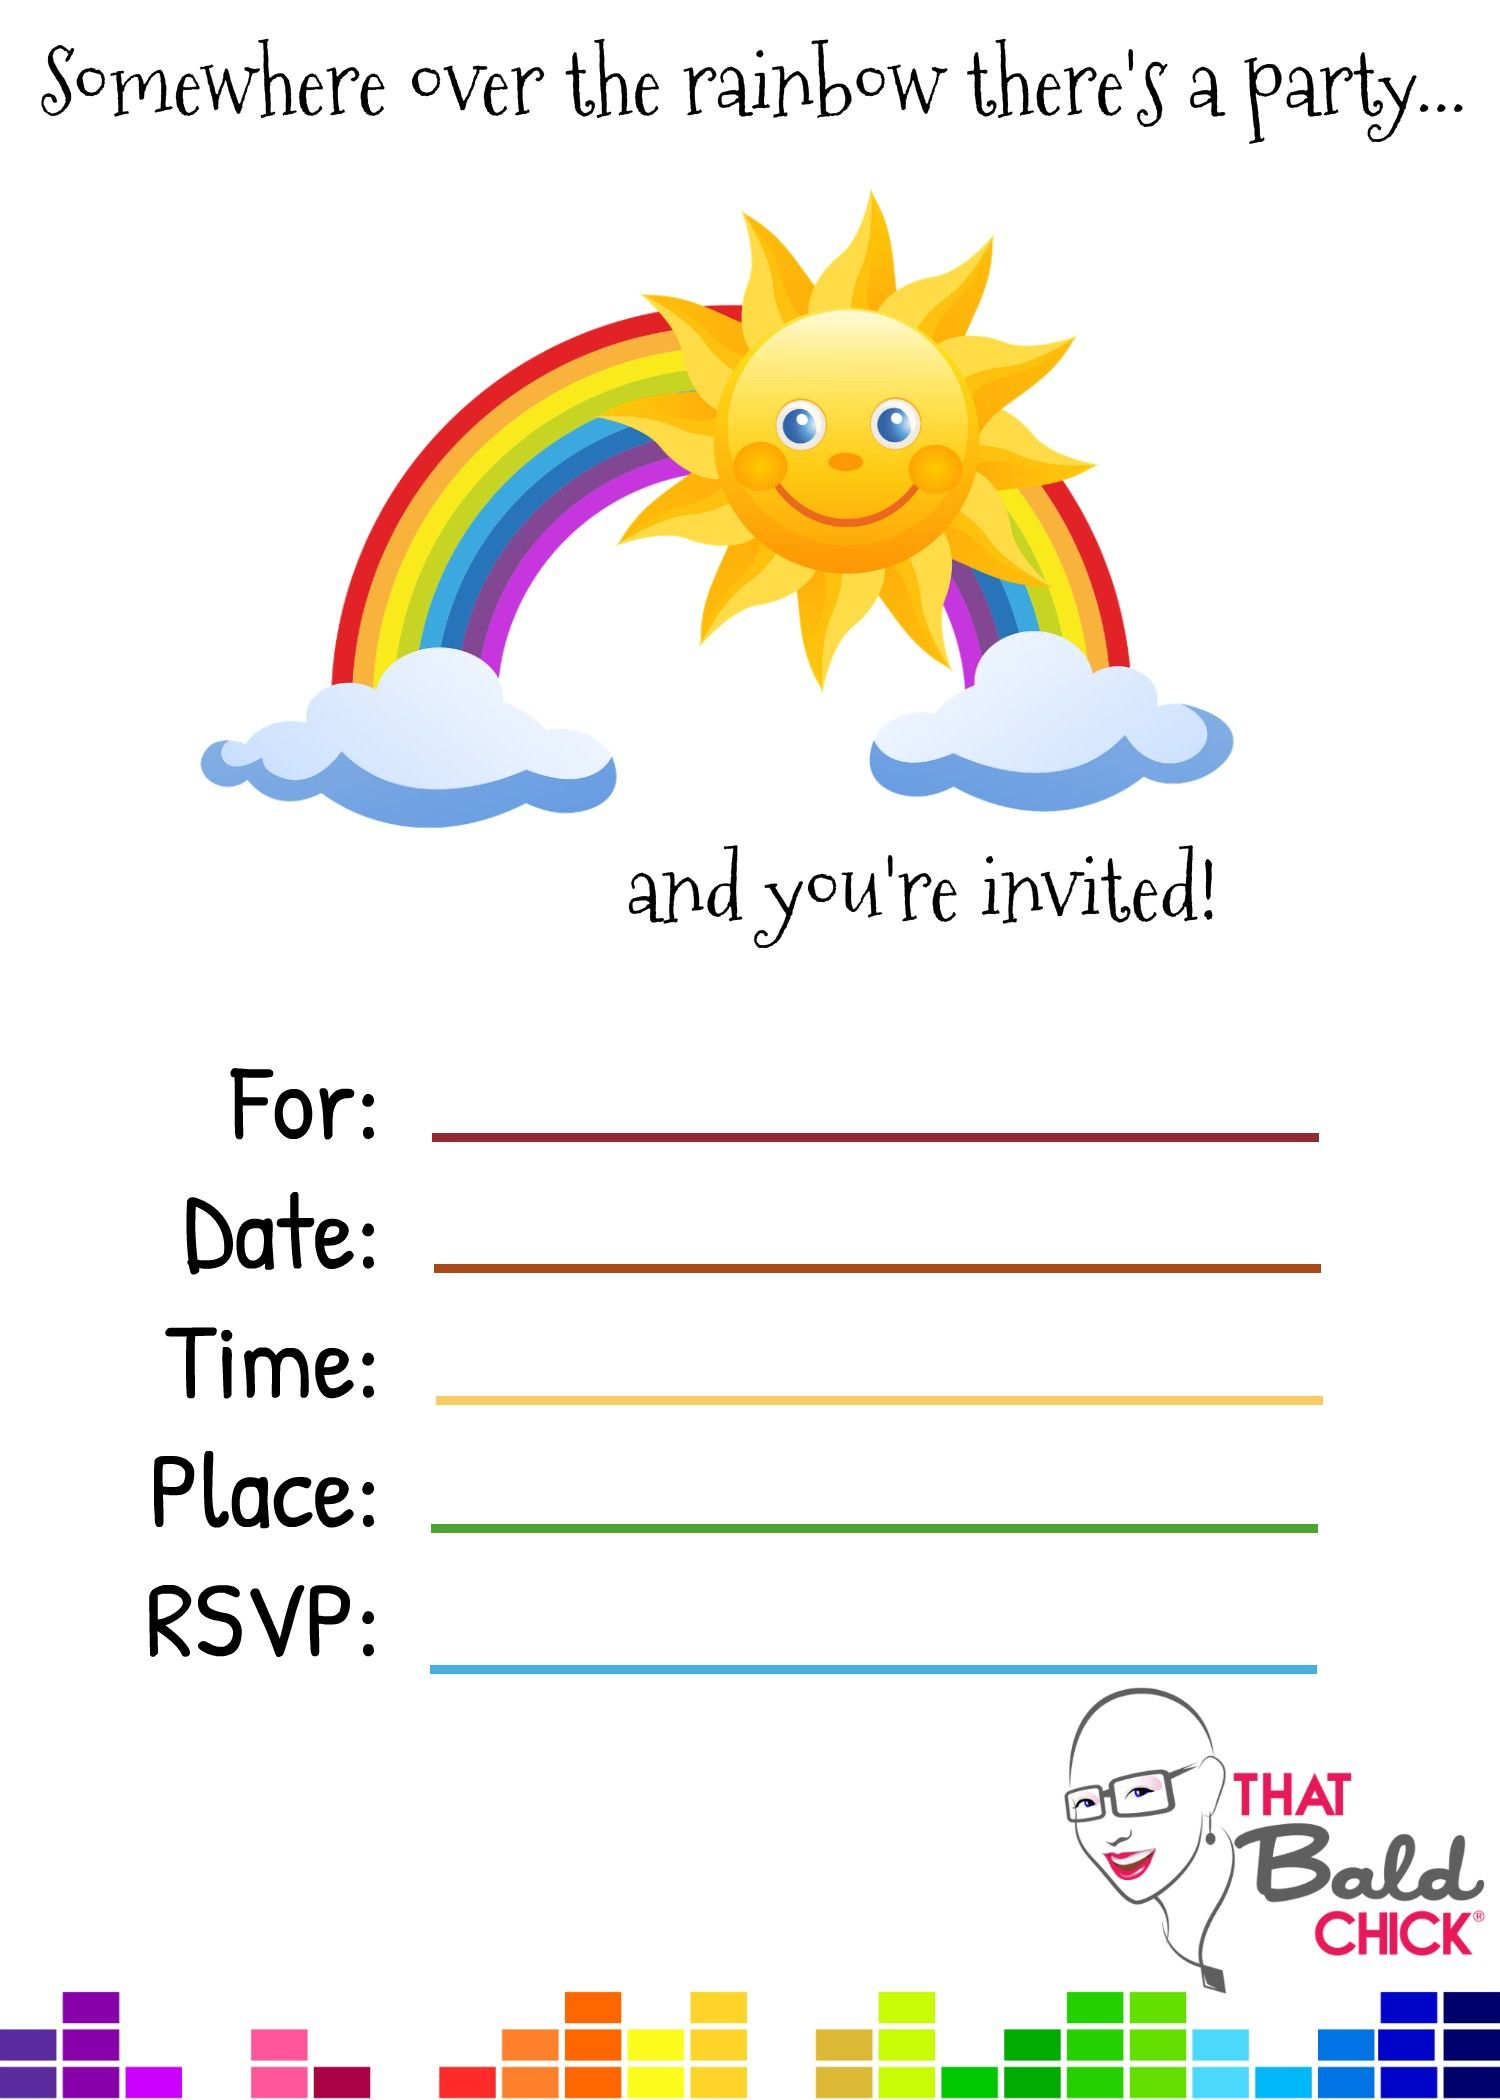 Free printable 5x7 Rainbow Party Invite at thatbaldchick.com | Great ...